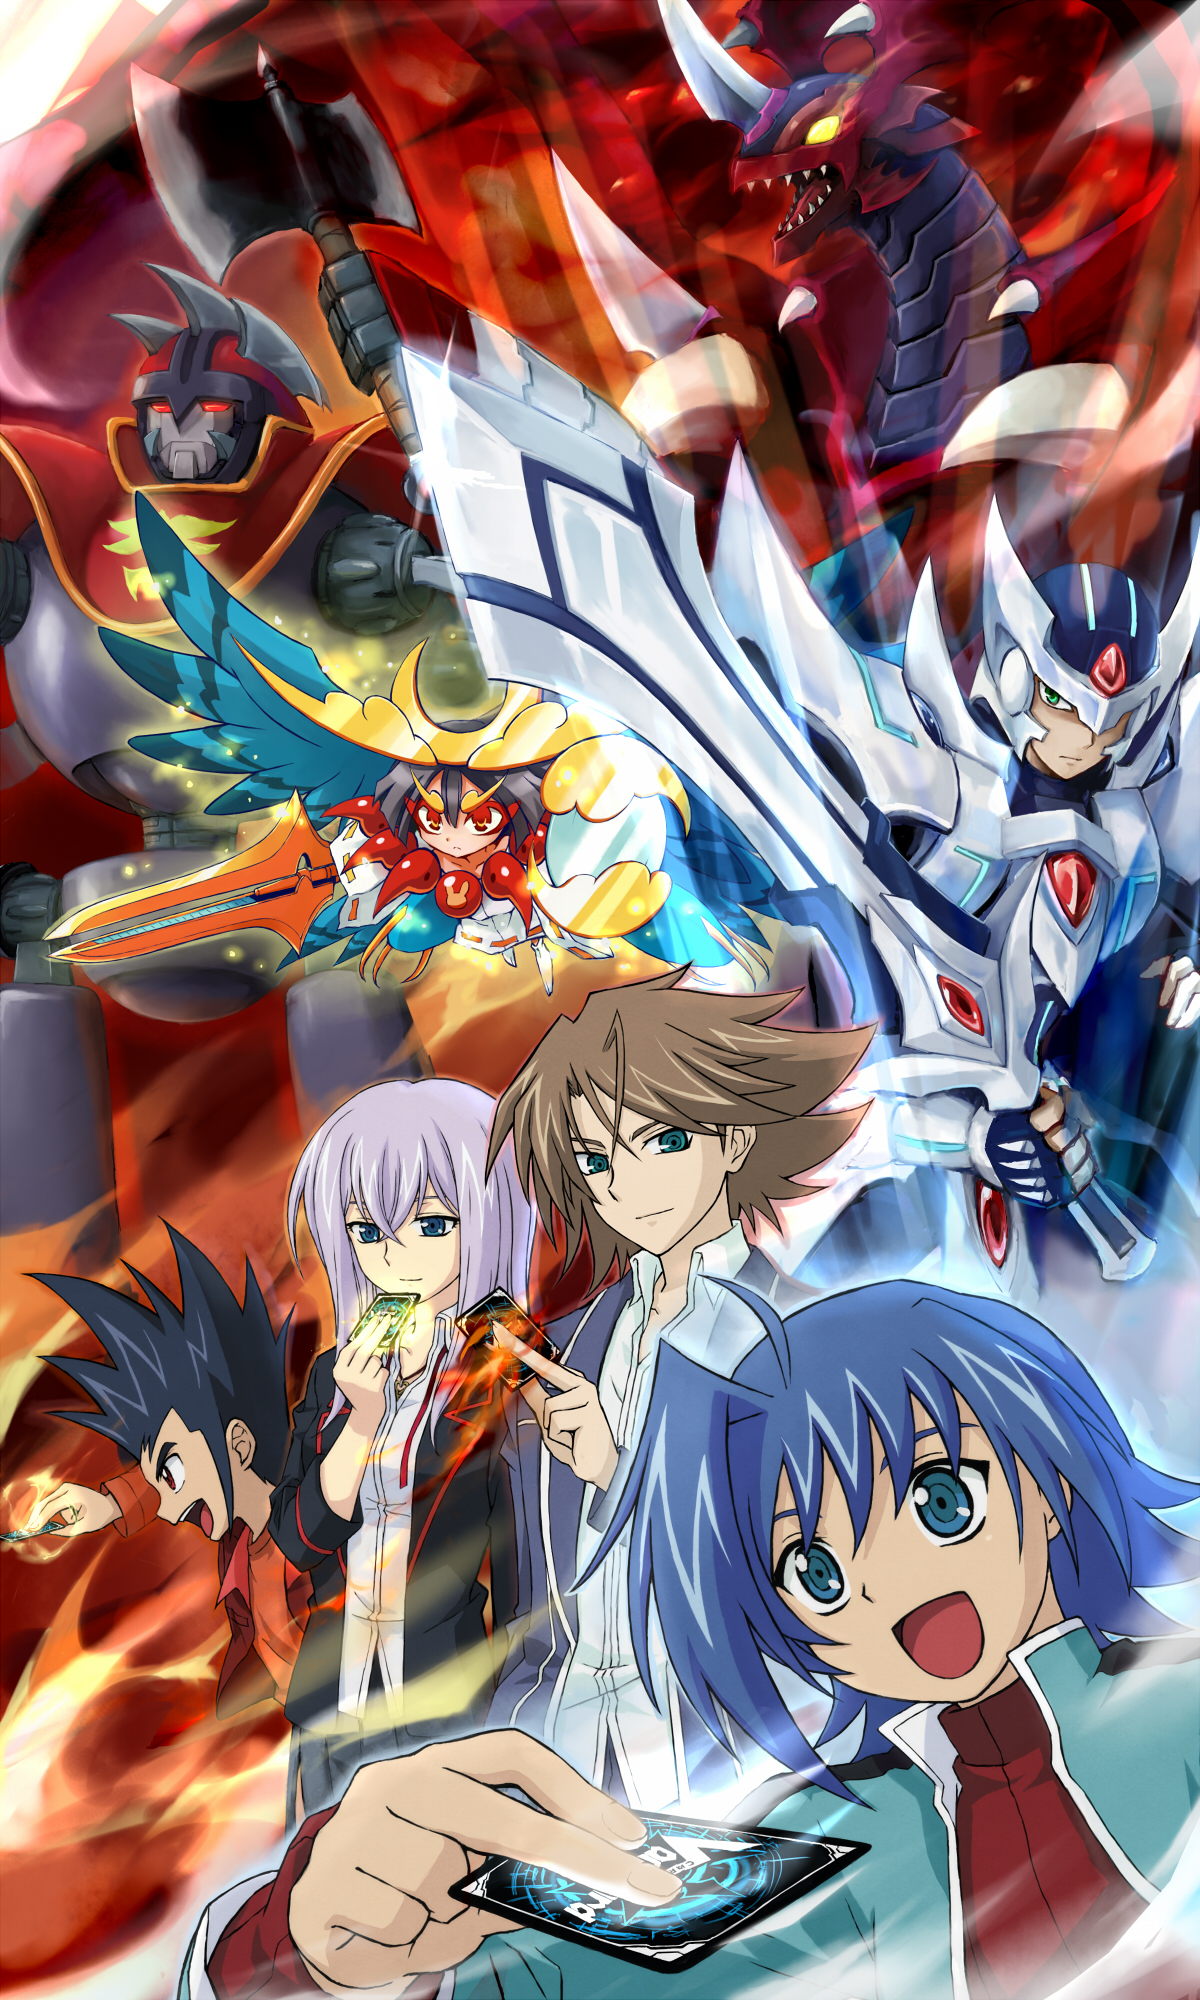 Cardfight Vanguard Wallpapers High Quality